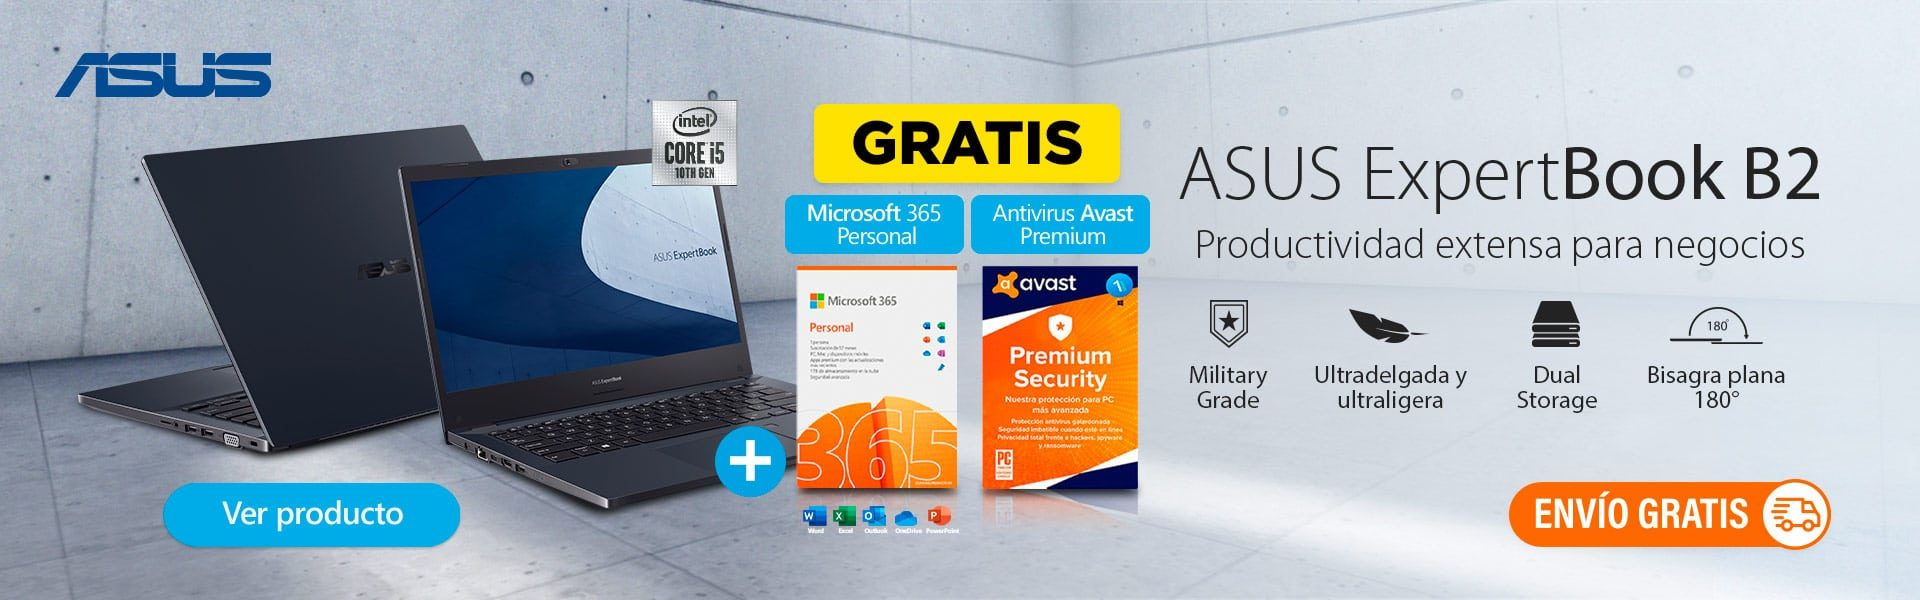 Banner_Home_Asus_laptop_expertbook_microsoft_365_personal-2